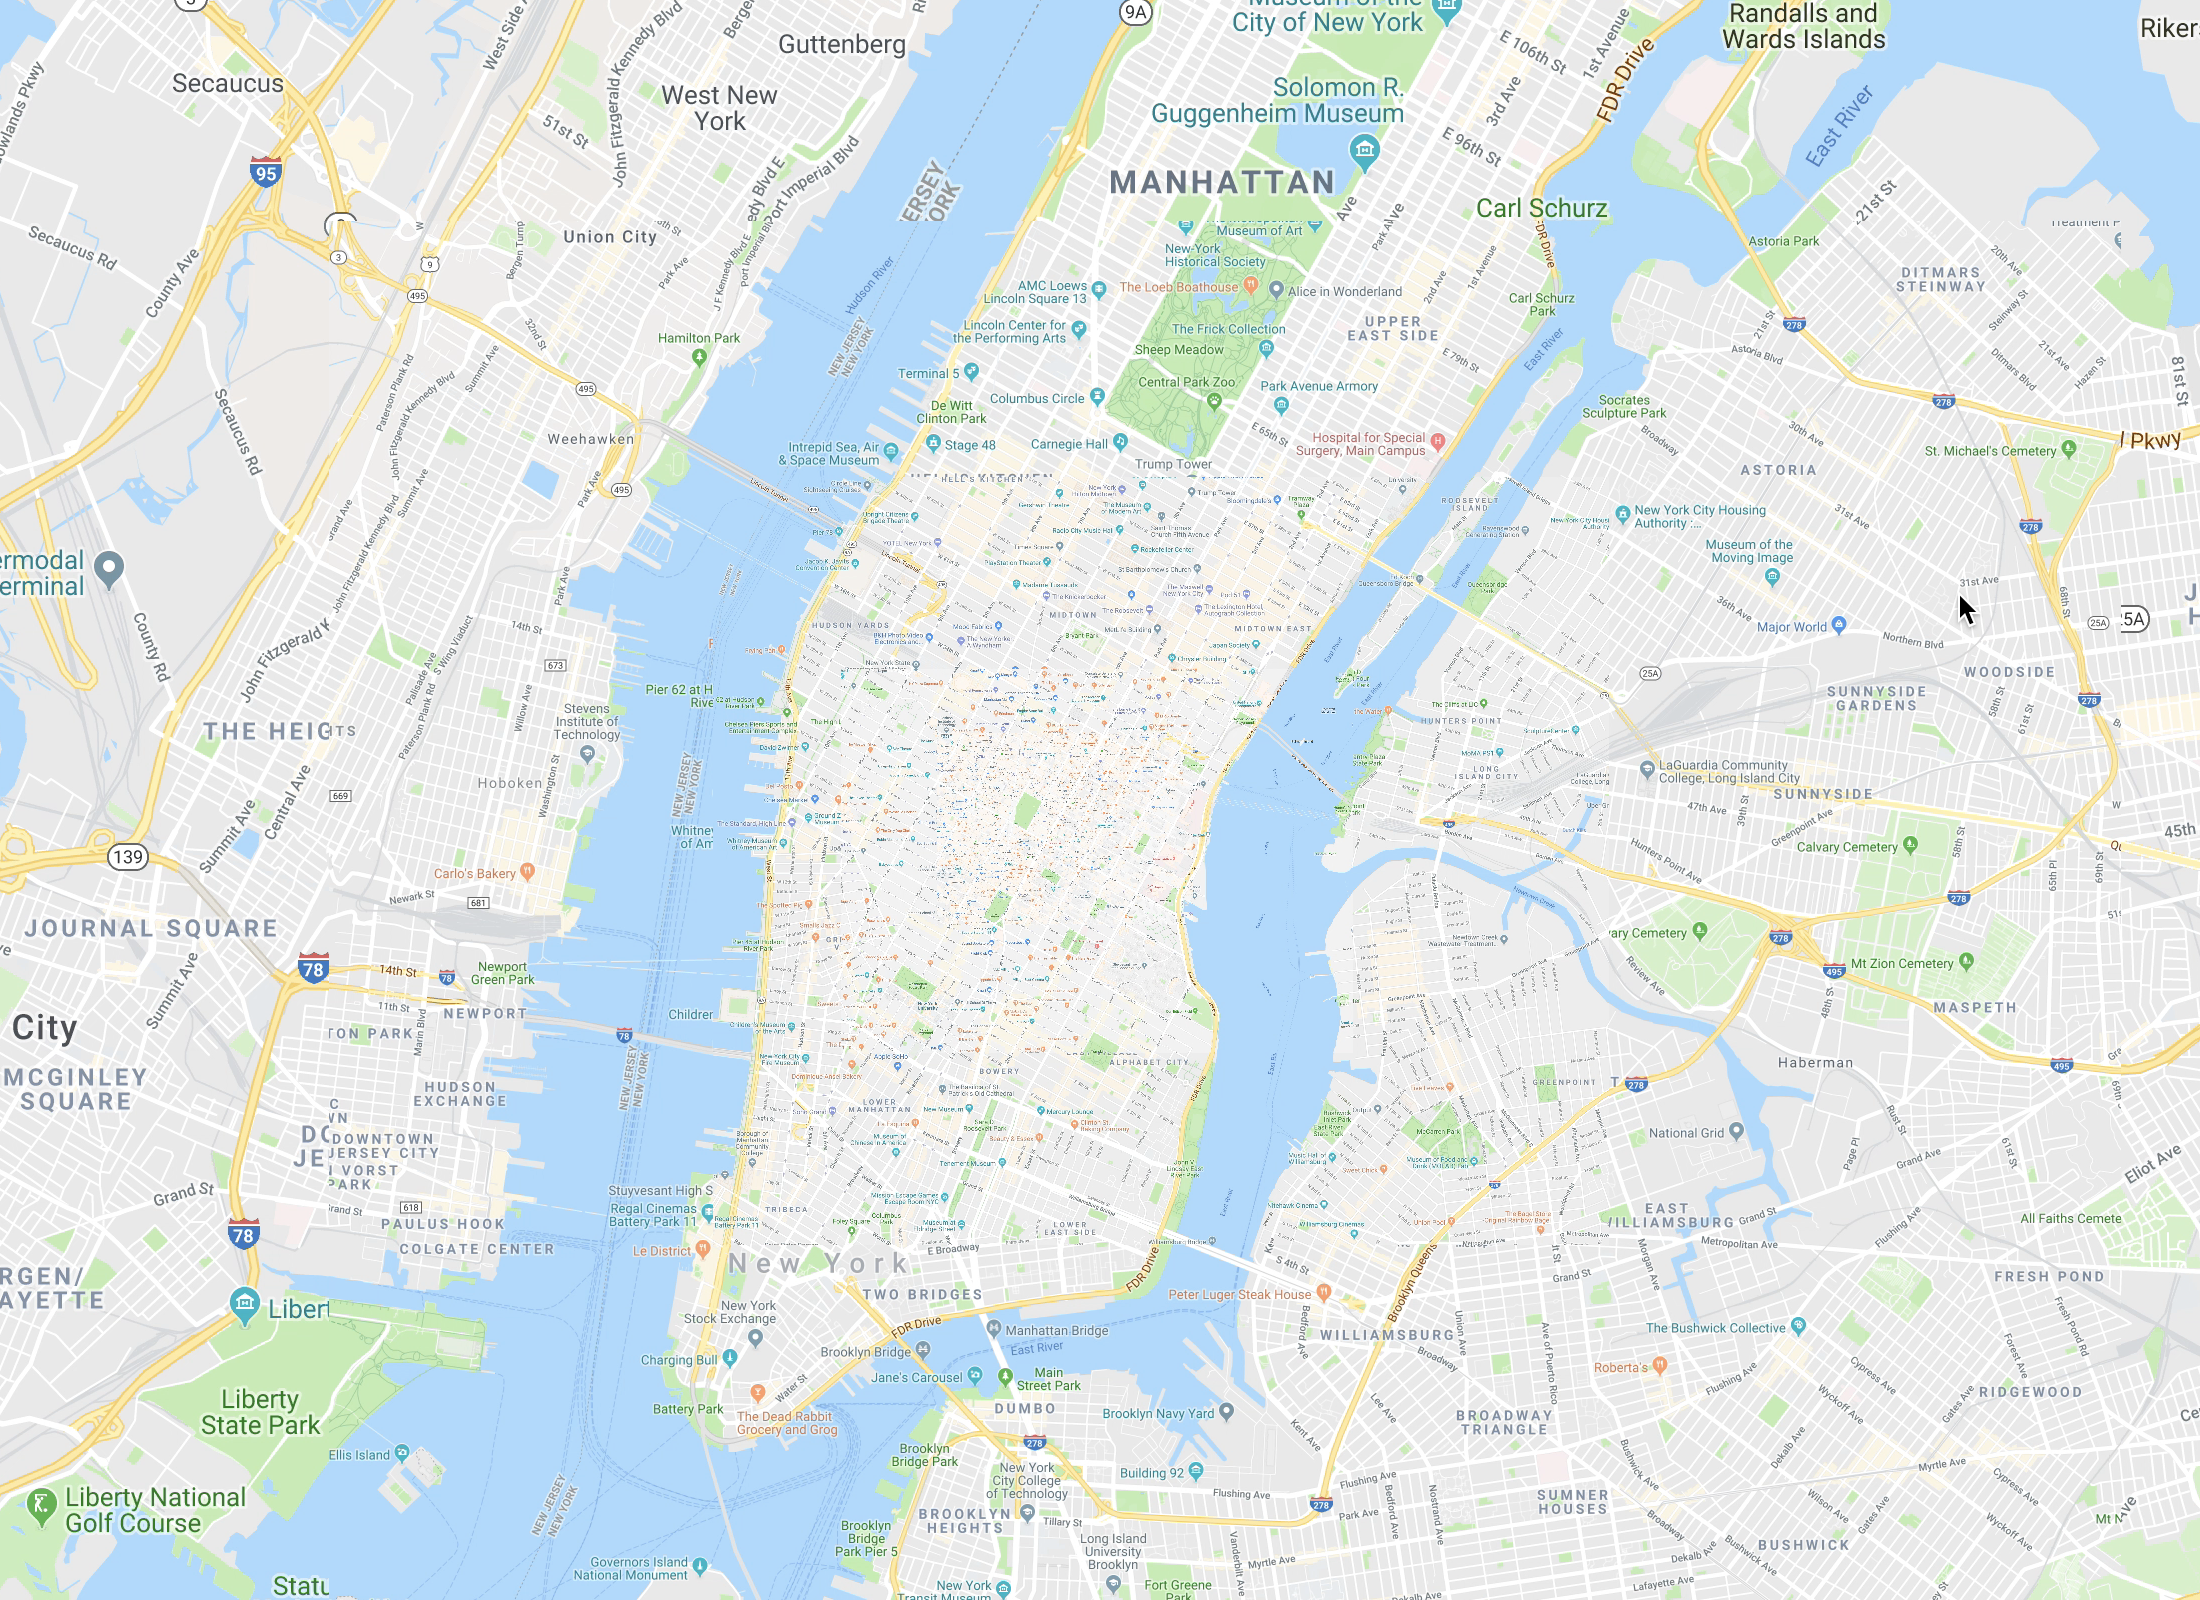 Prototyping a Smoother Map - Google Design - Medium